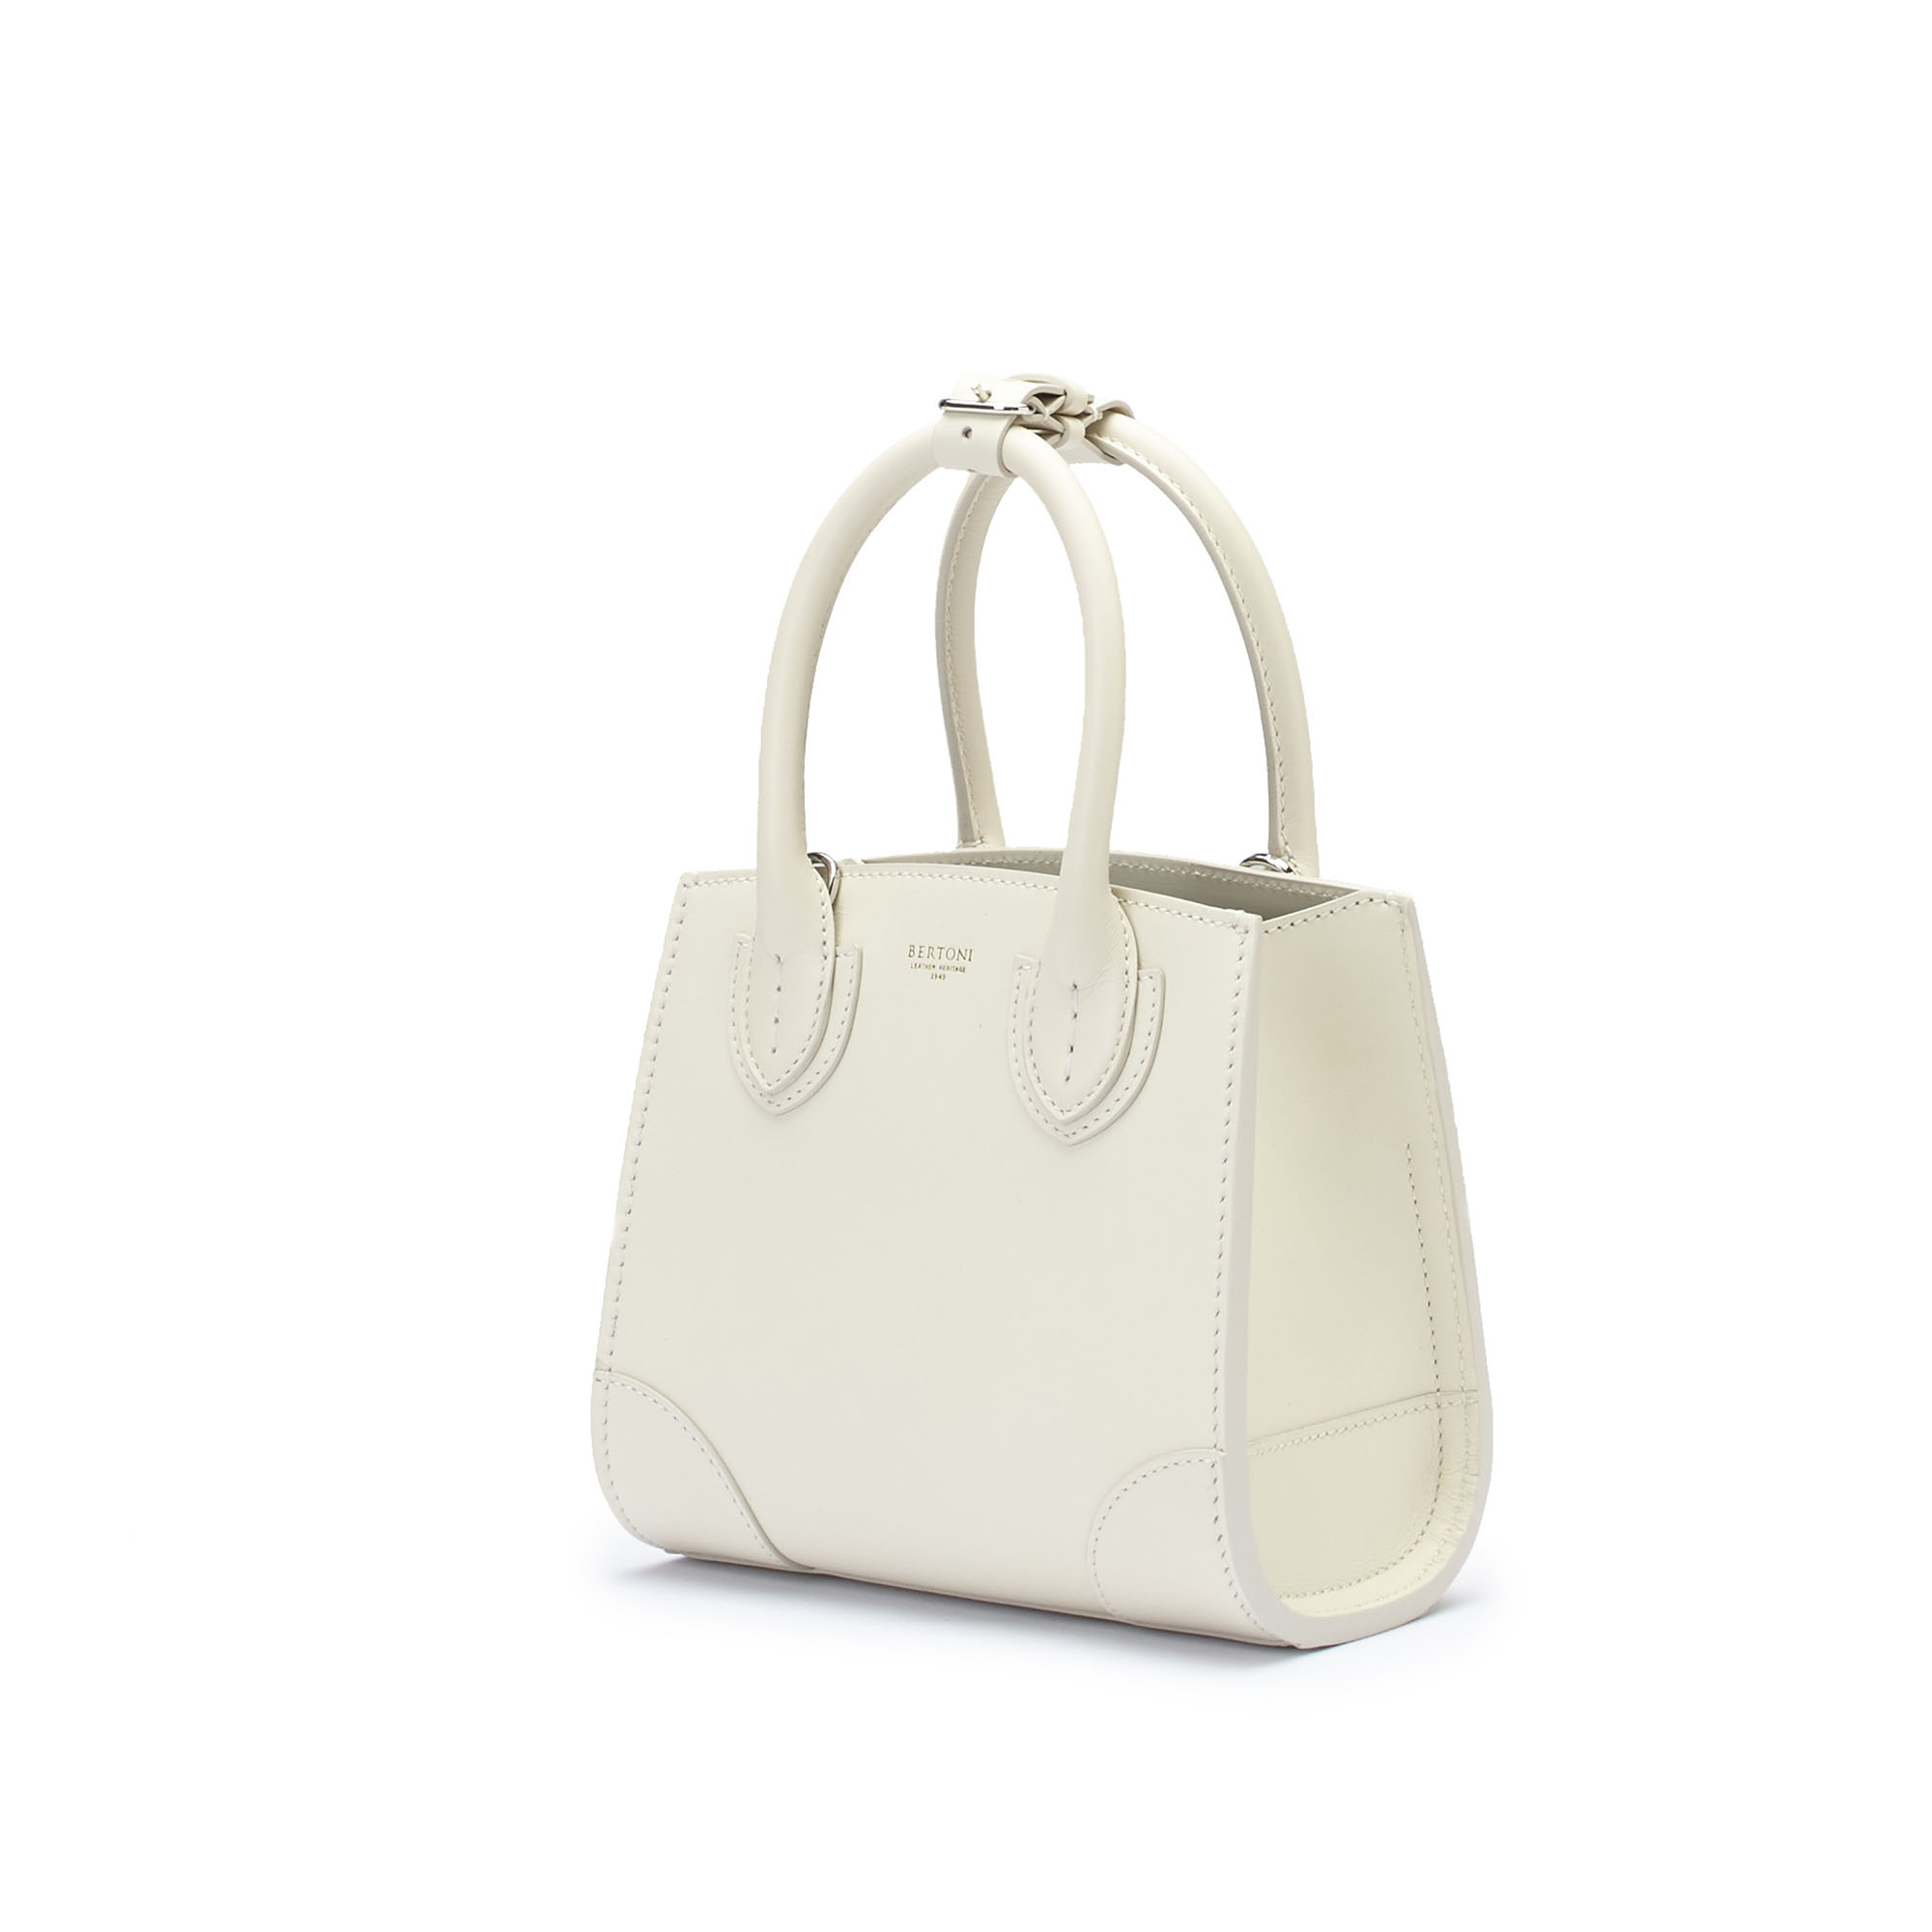 The ivory french calf Darcy bag by Bertoni 1949 03